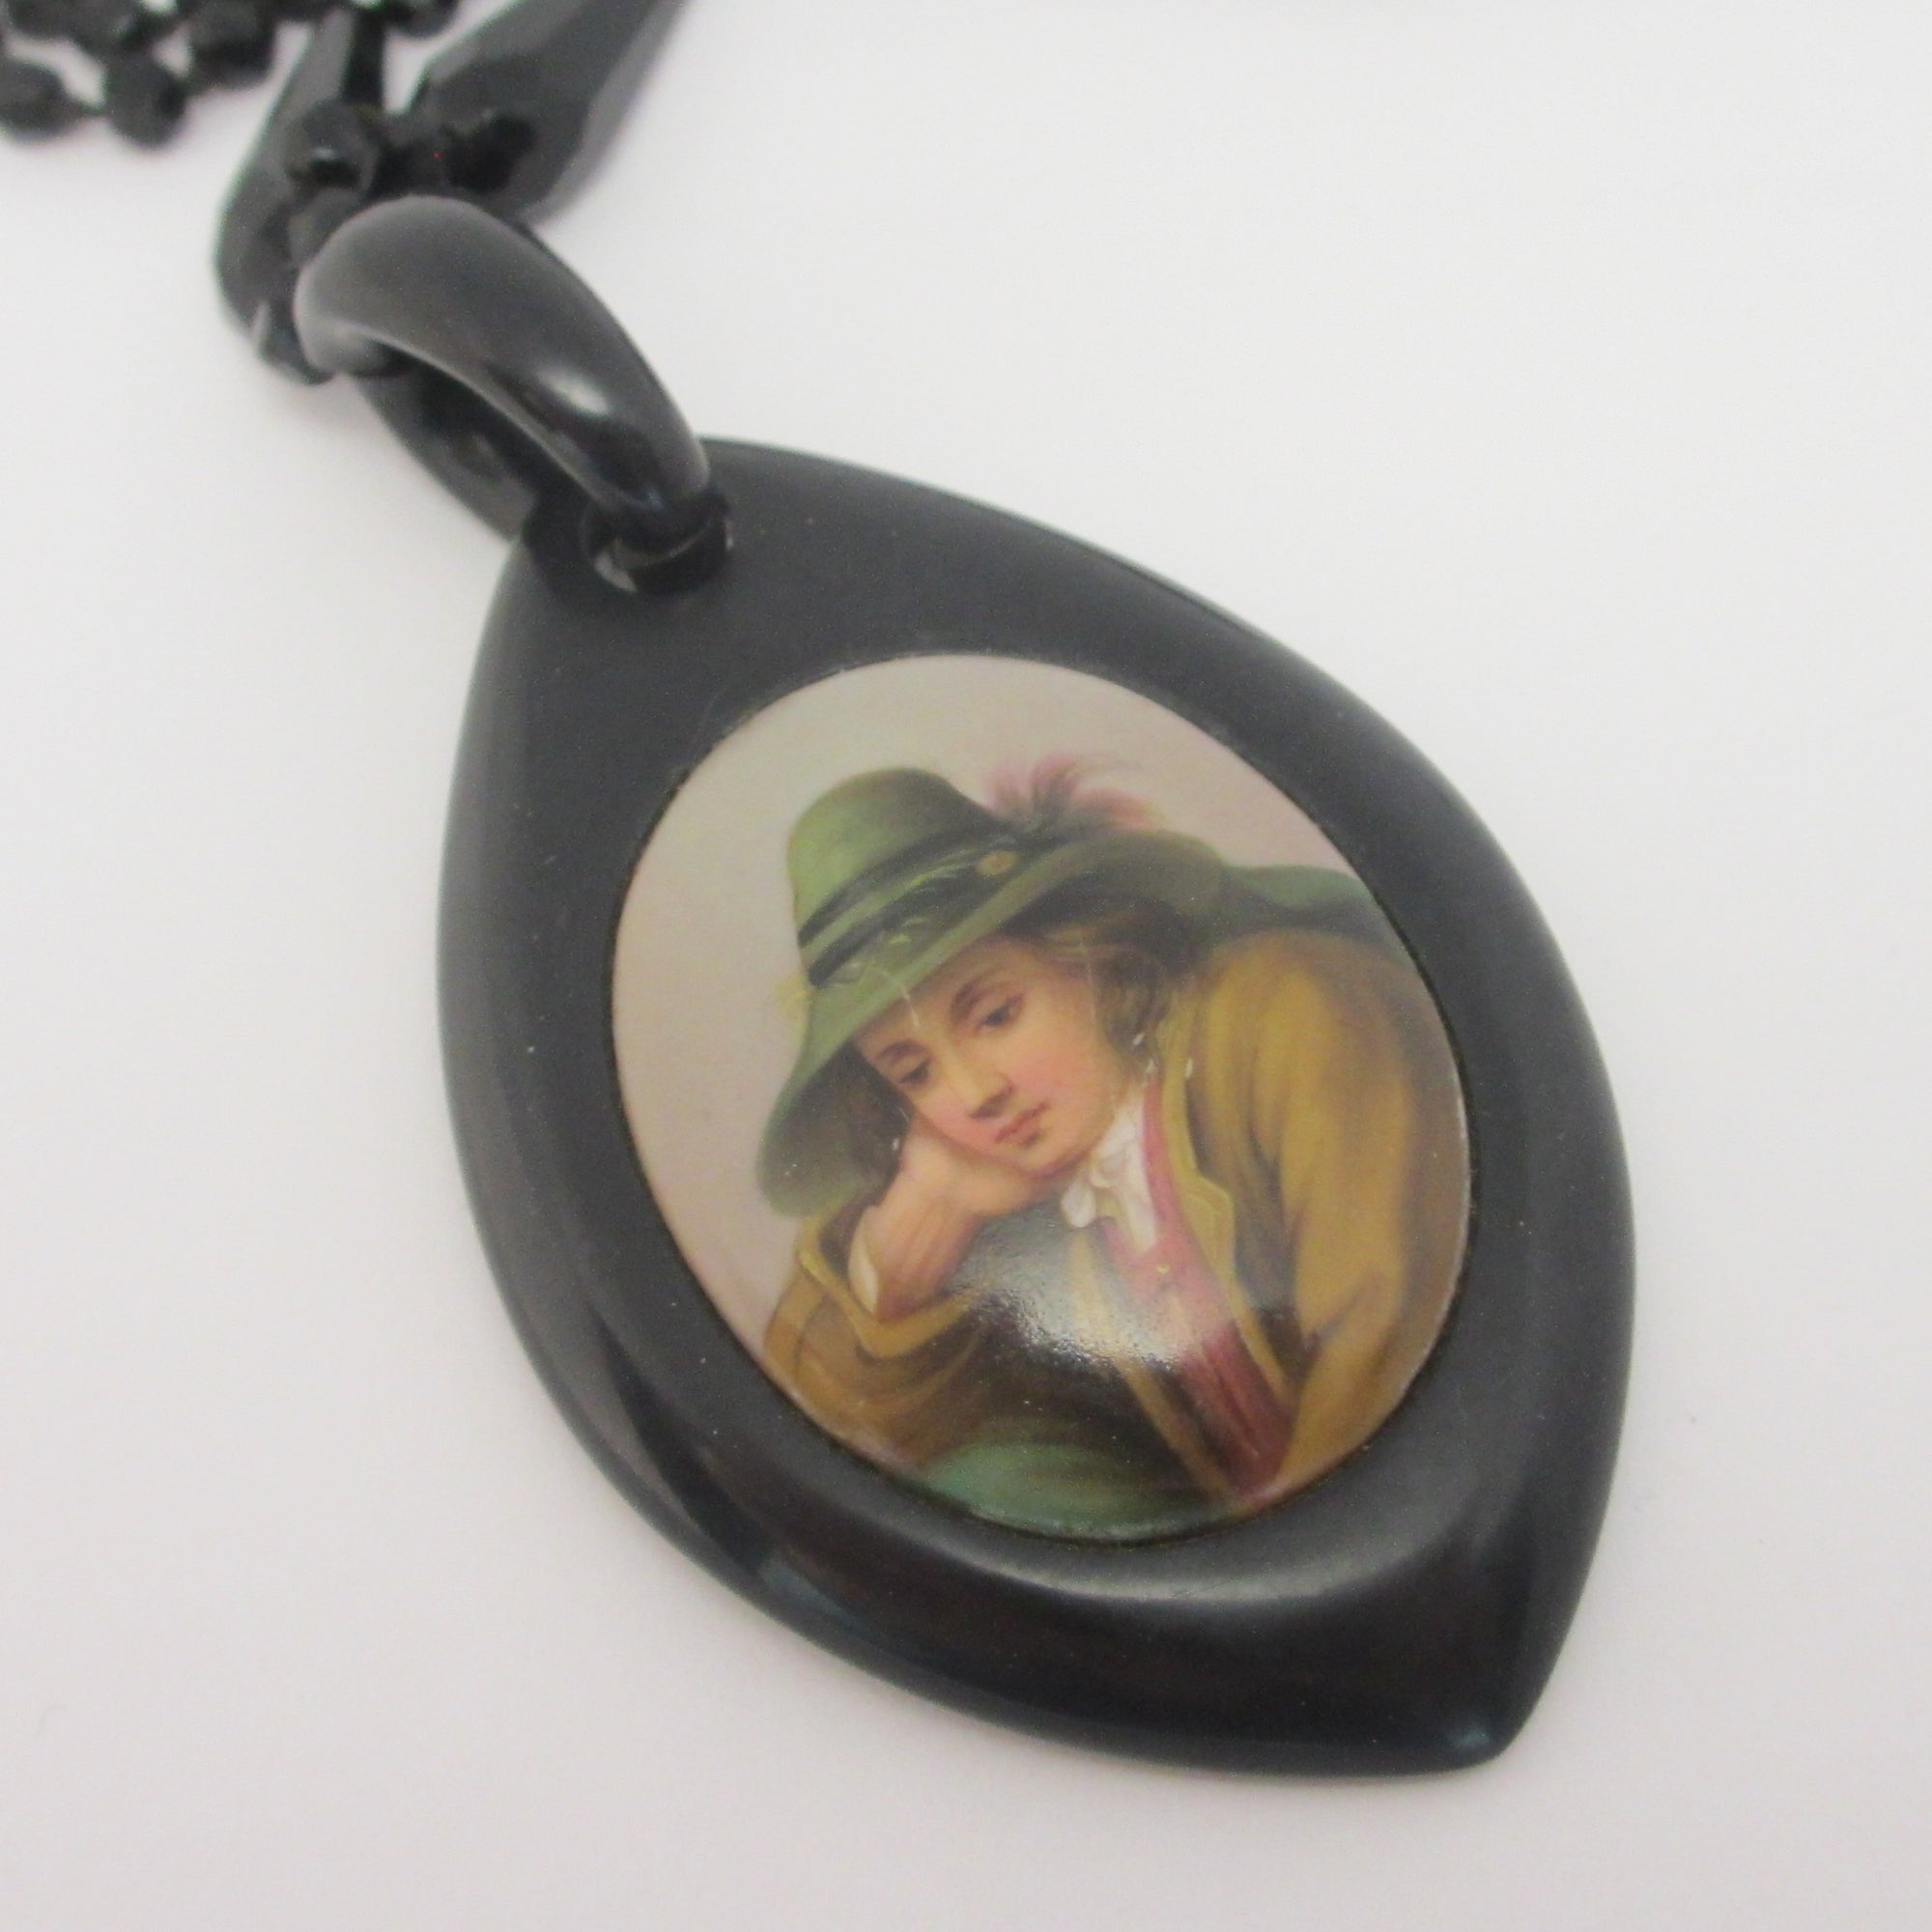 Whitby Jet Pendant Porcelain Portrait Necklace Antique Victorian c1860